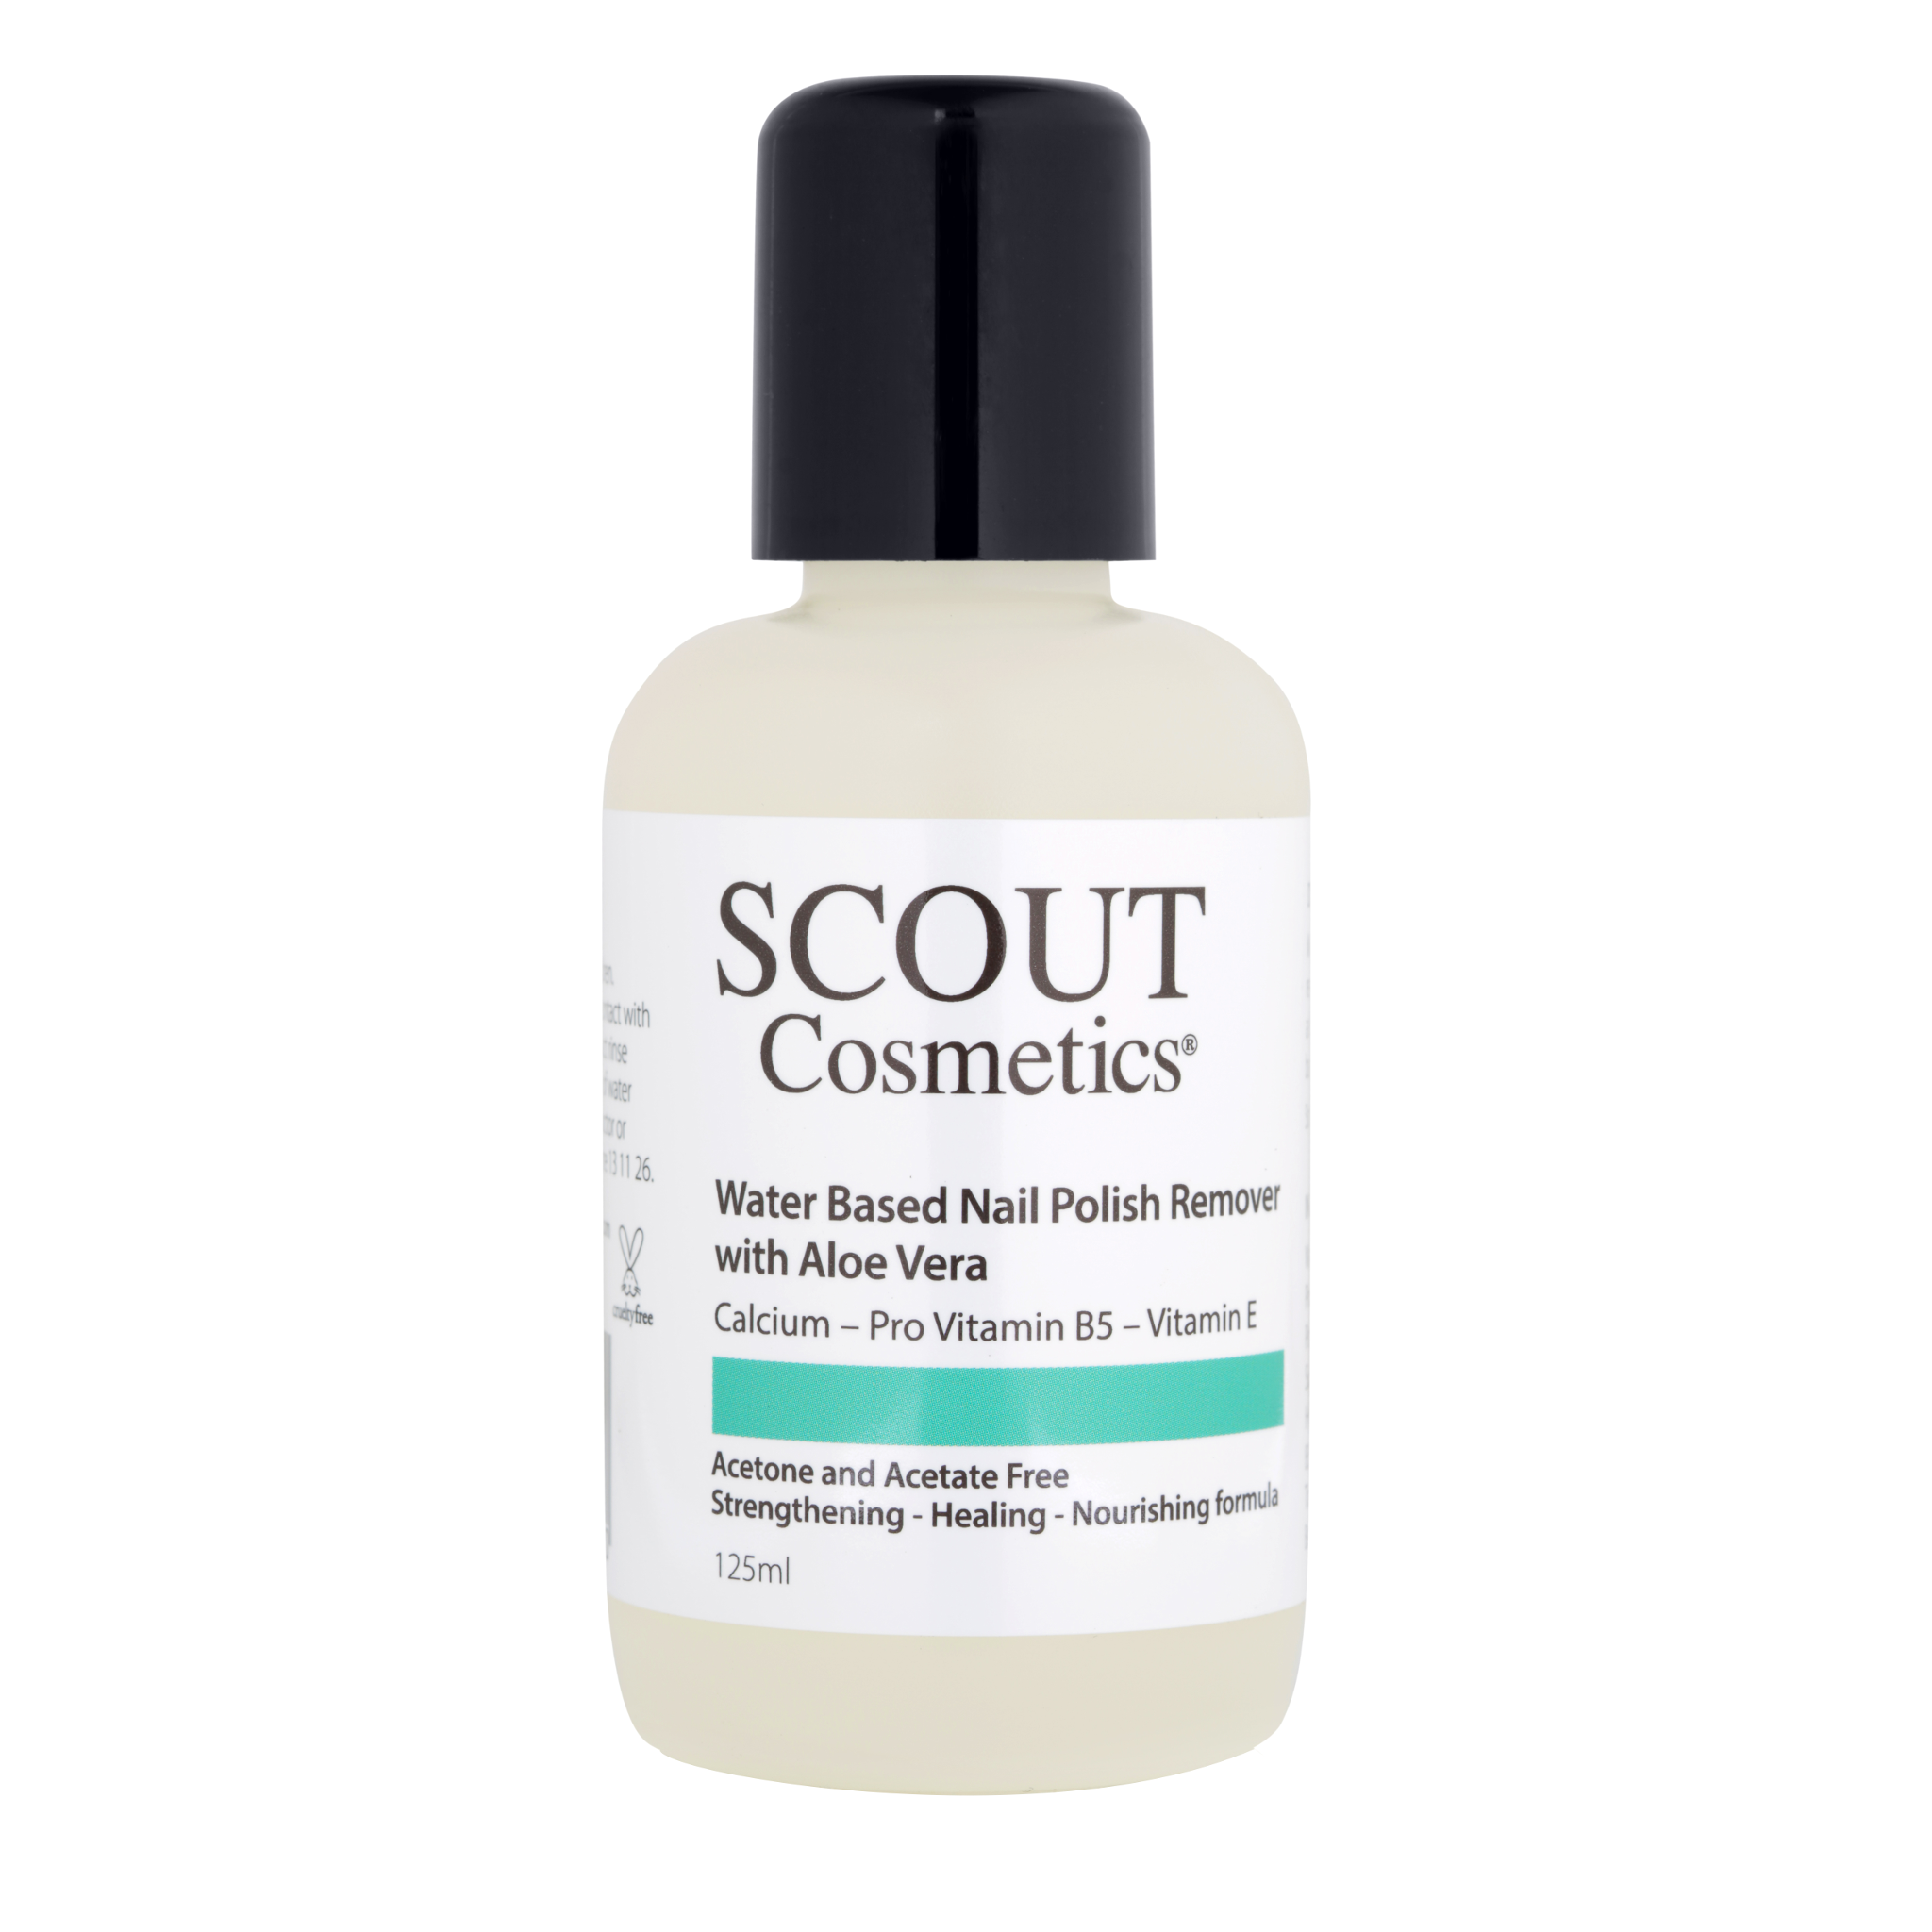 SCOUT Cosmetics Nail Polish Remover With Aloe